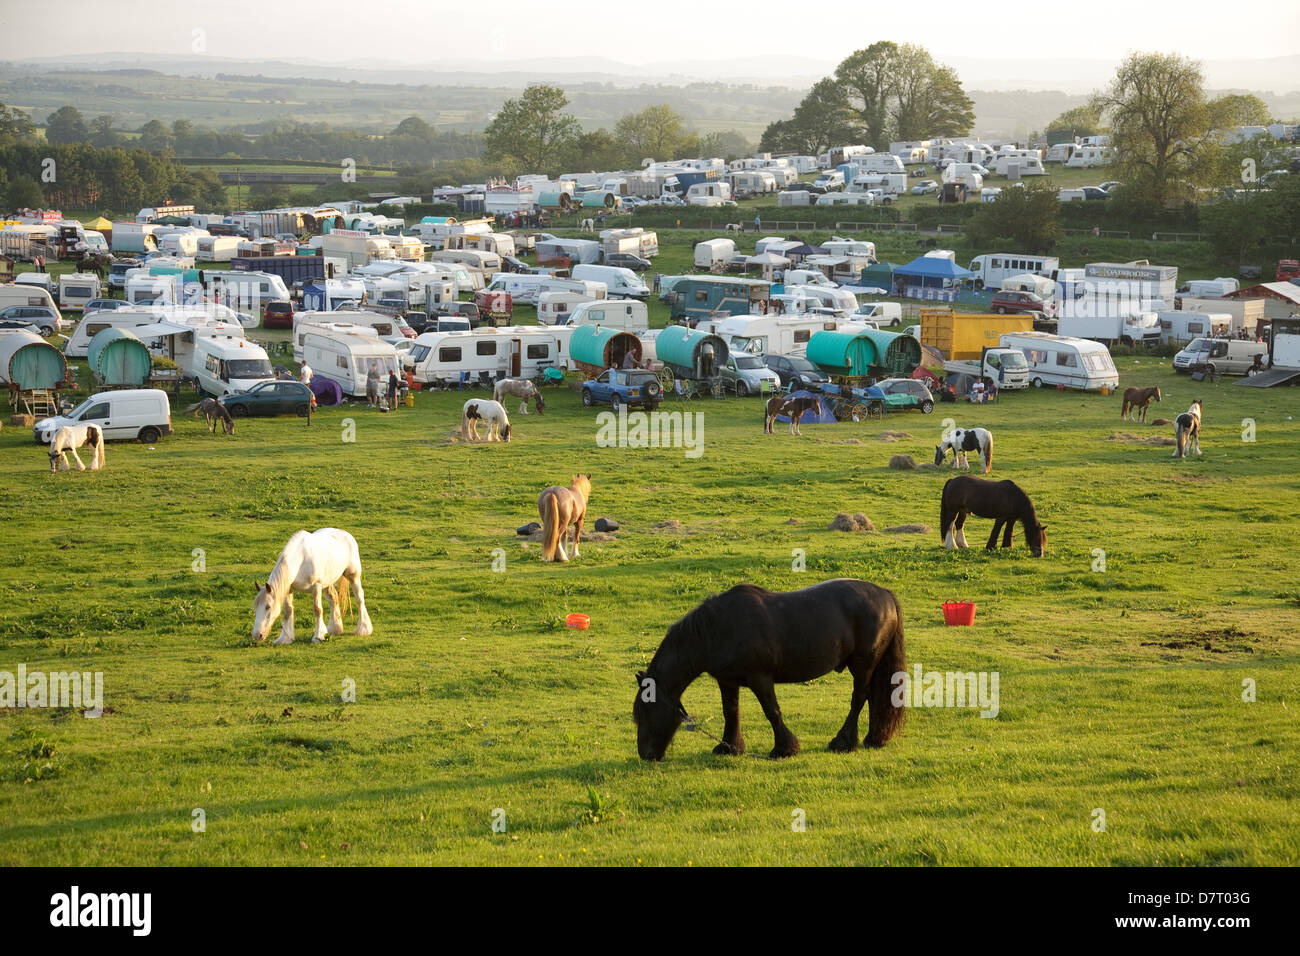 The camping grounds at the Appleby Fair, an annual summer gathering of Gypsy and Traveller communities in Cumbria, - Stock Image